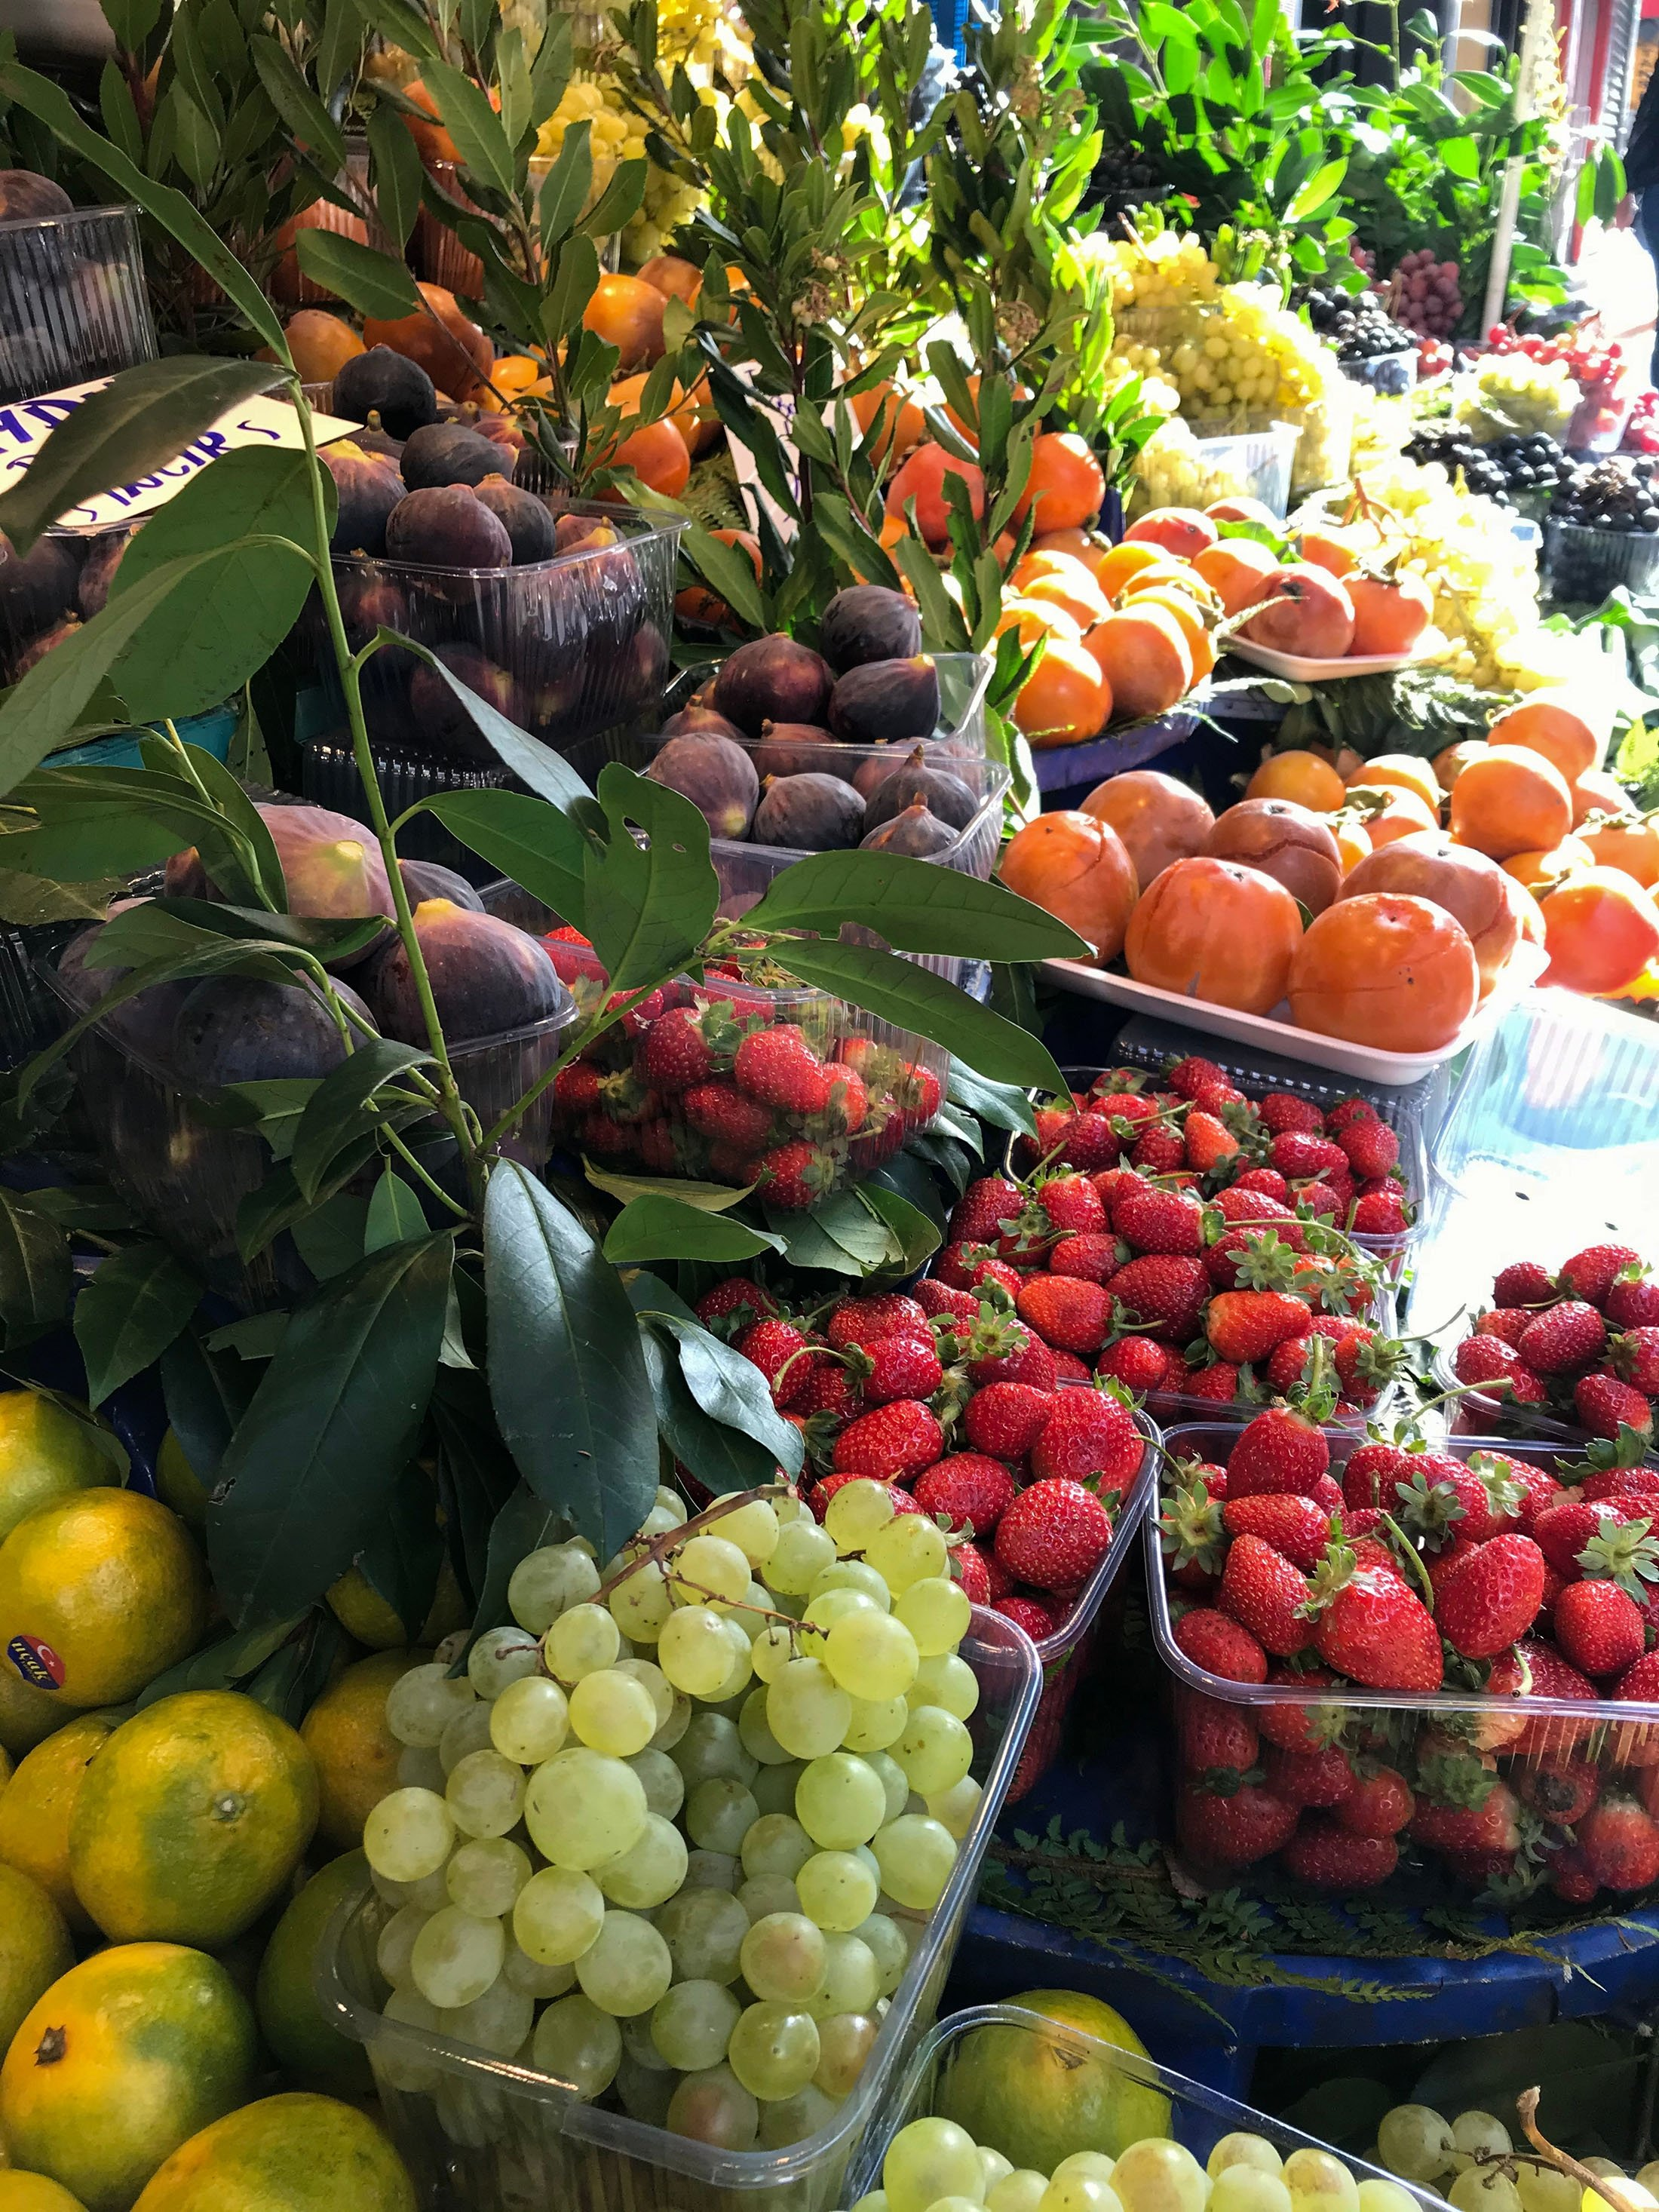 The Şişli ecological bazaar has stands full of rainbow-colored fruits. (Shutterstock Photo)